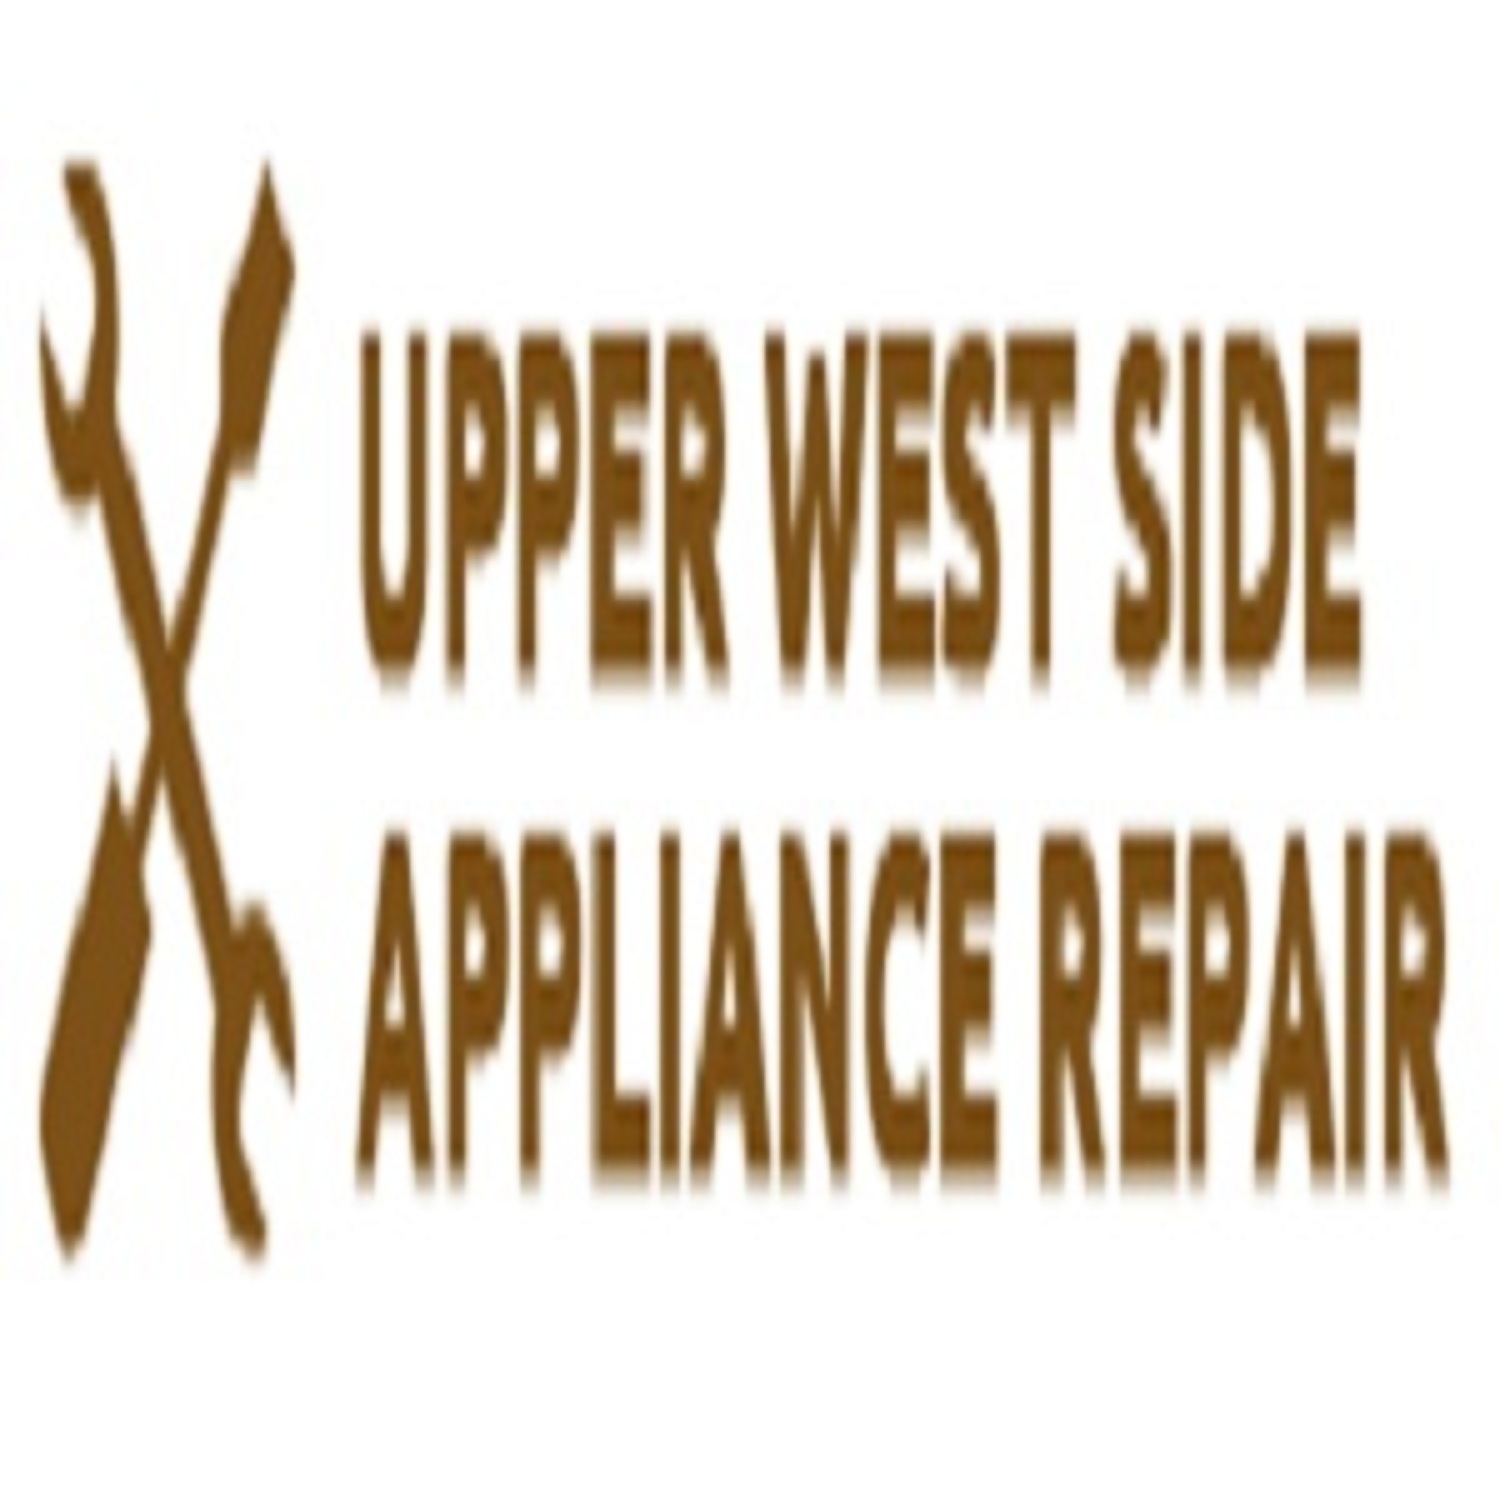 Upper West Side Appliance Repair